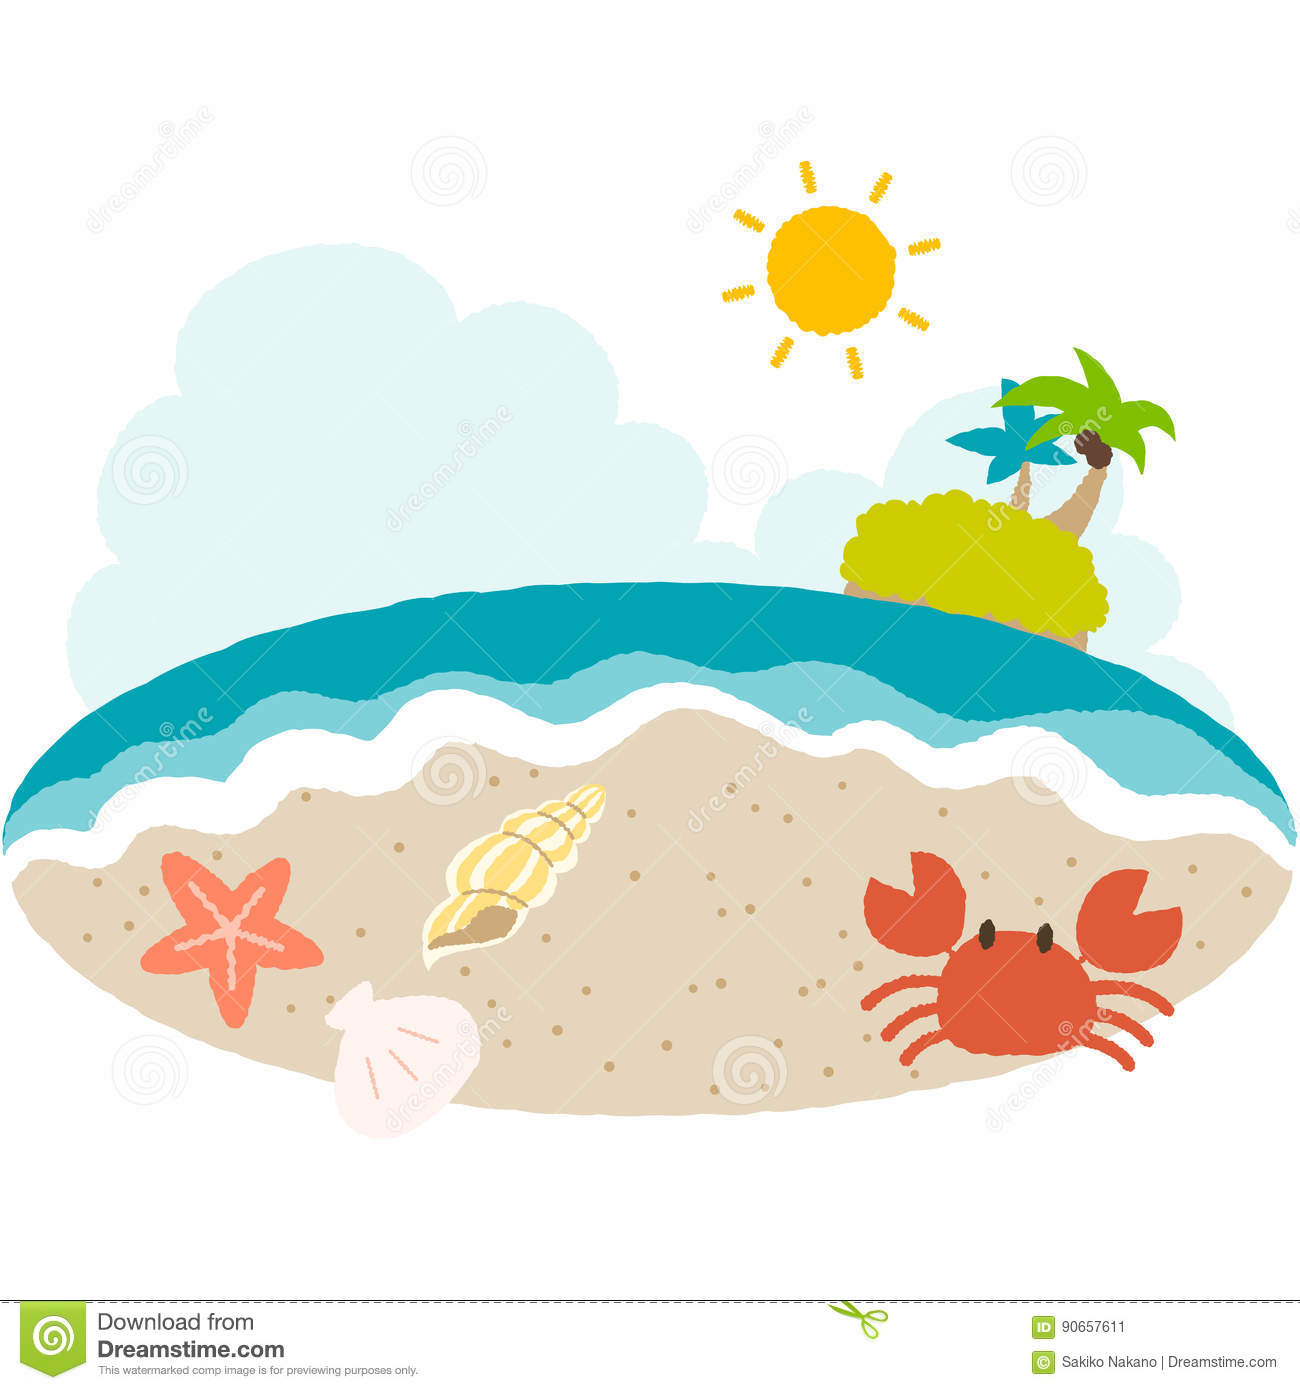 A vector illustration of beach side with cute taste